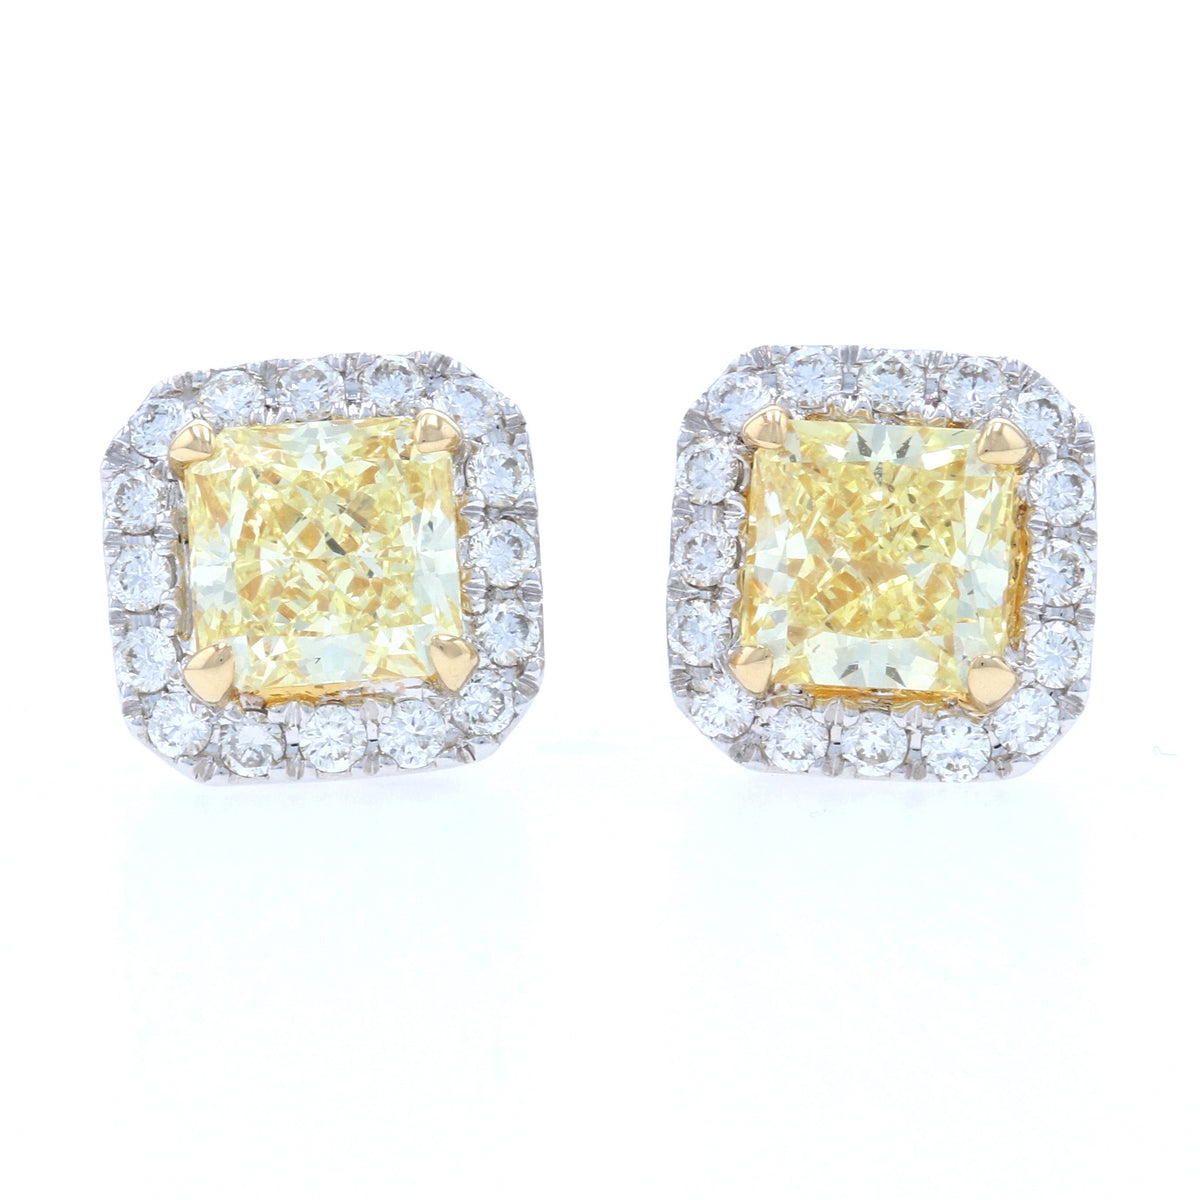 1.74ctw Fancy Yellow Diamond Earrings White Gold